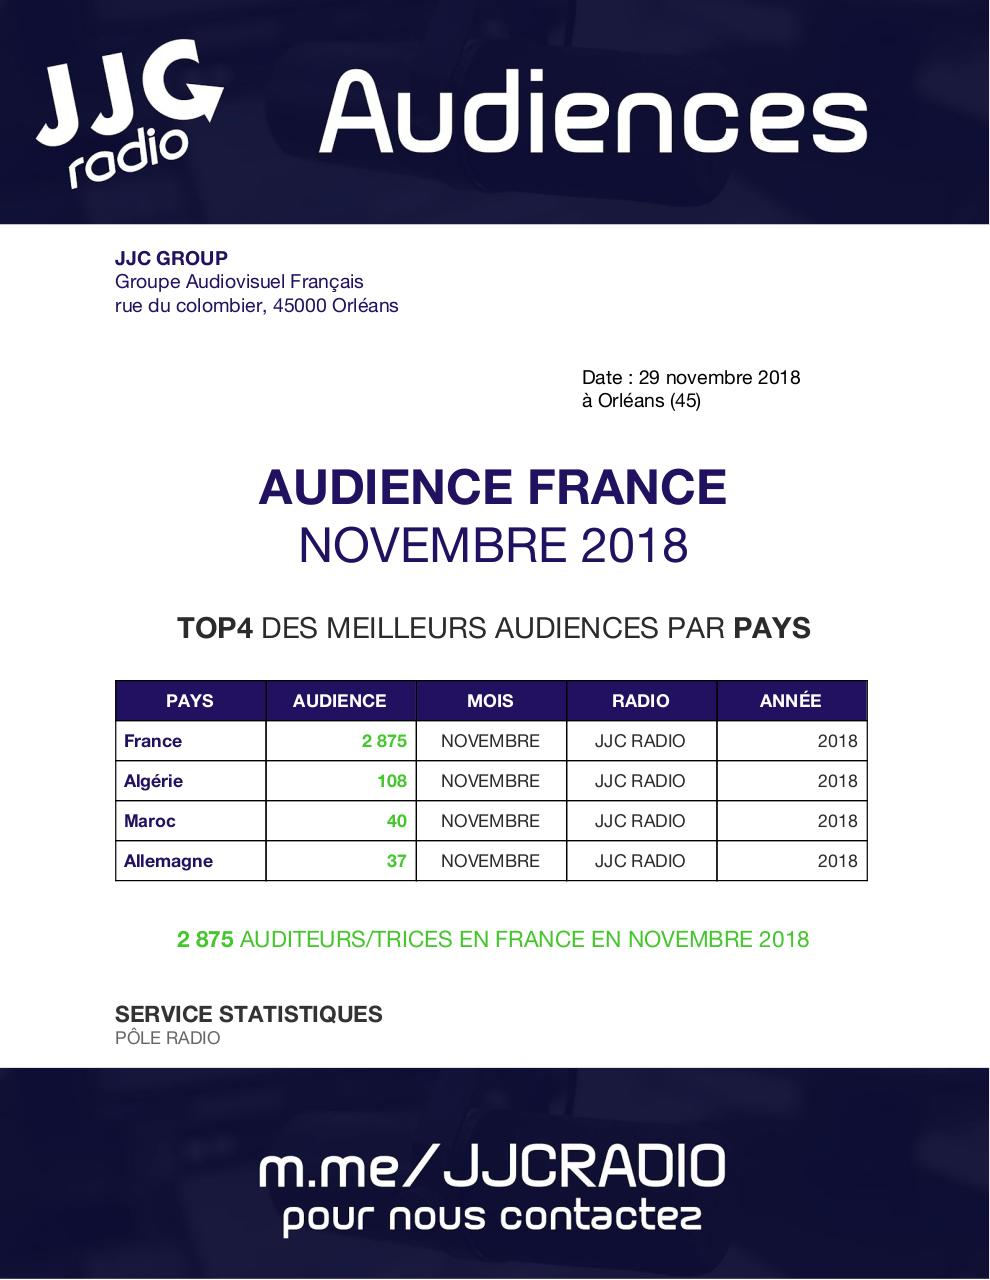 Aperçu du document Audiences_France_JJC RADIO_Novembre2018.pdf - page 1/6